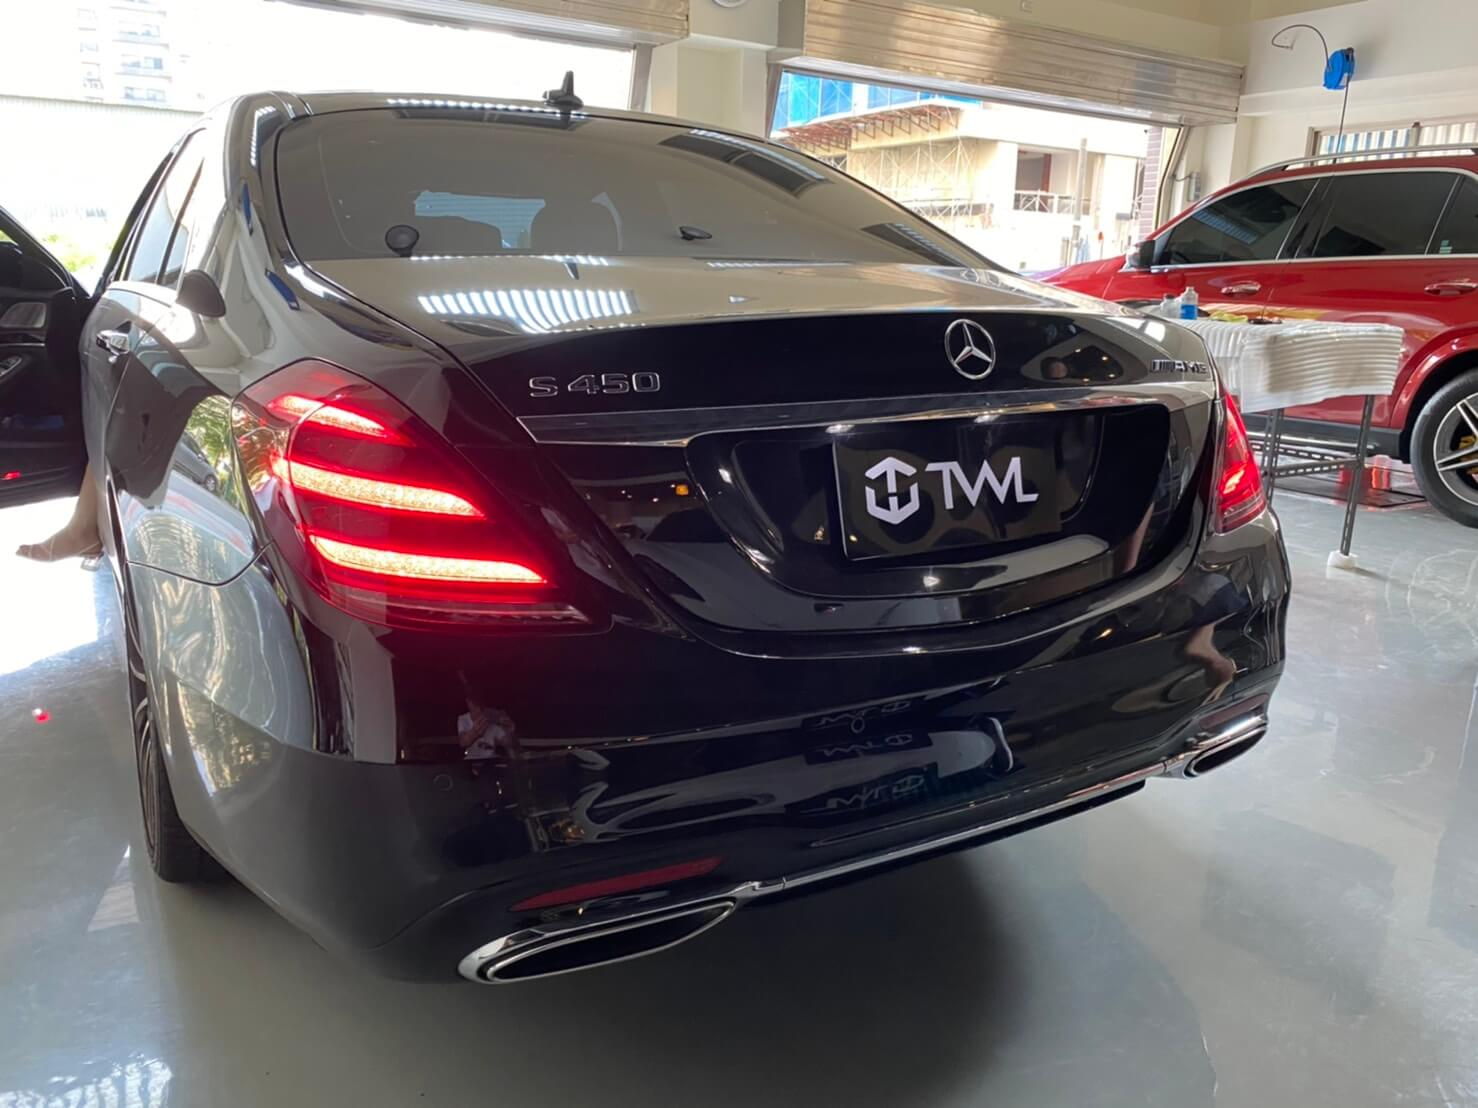 TWL-BENZ W222 S-Class S63 S65 S450 AMG-Tail lights